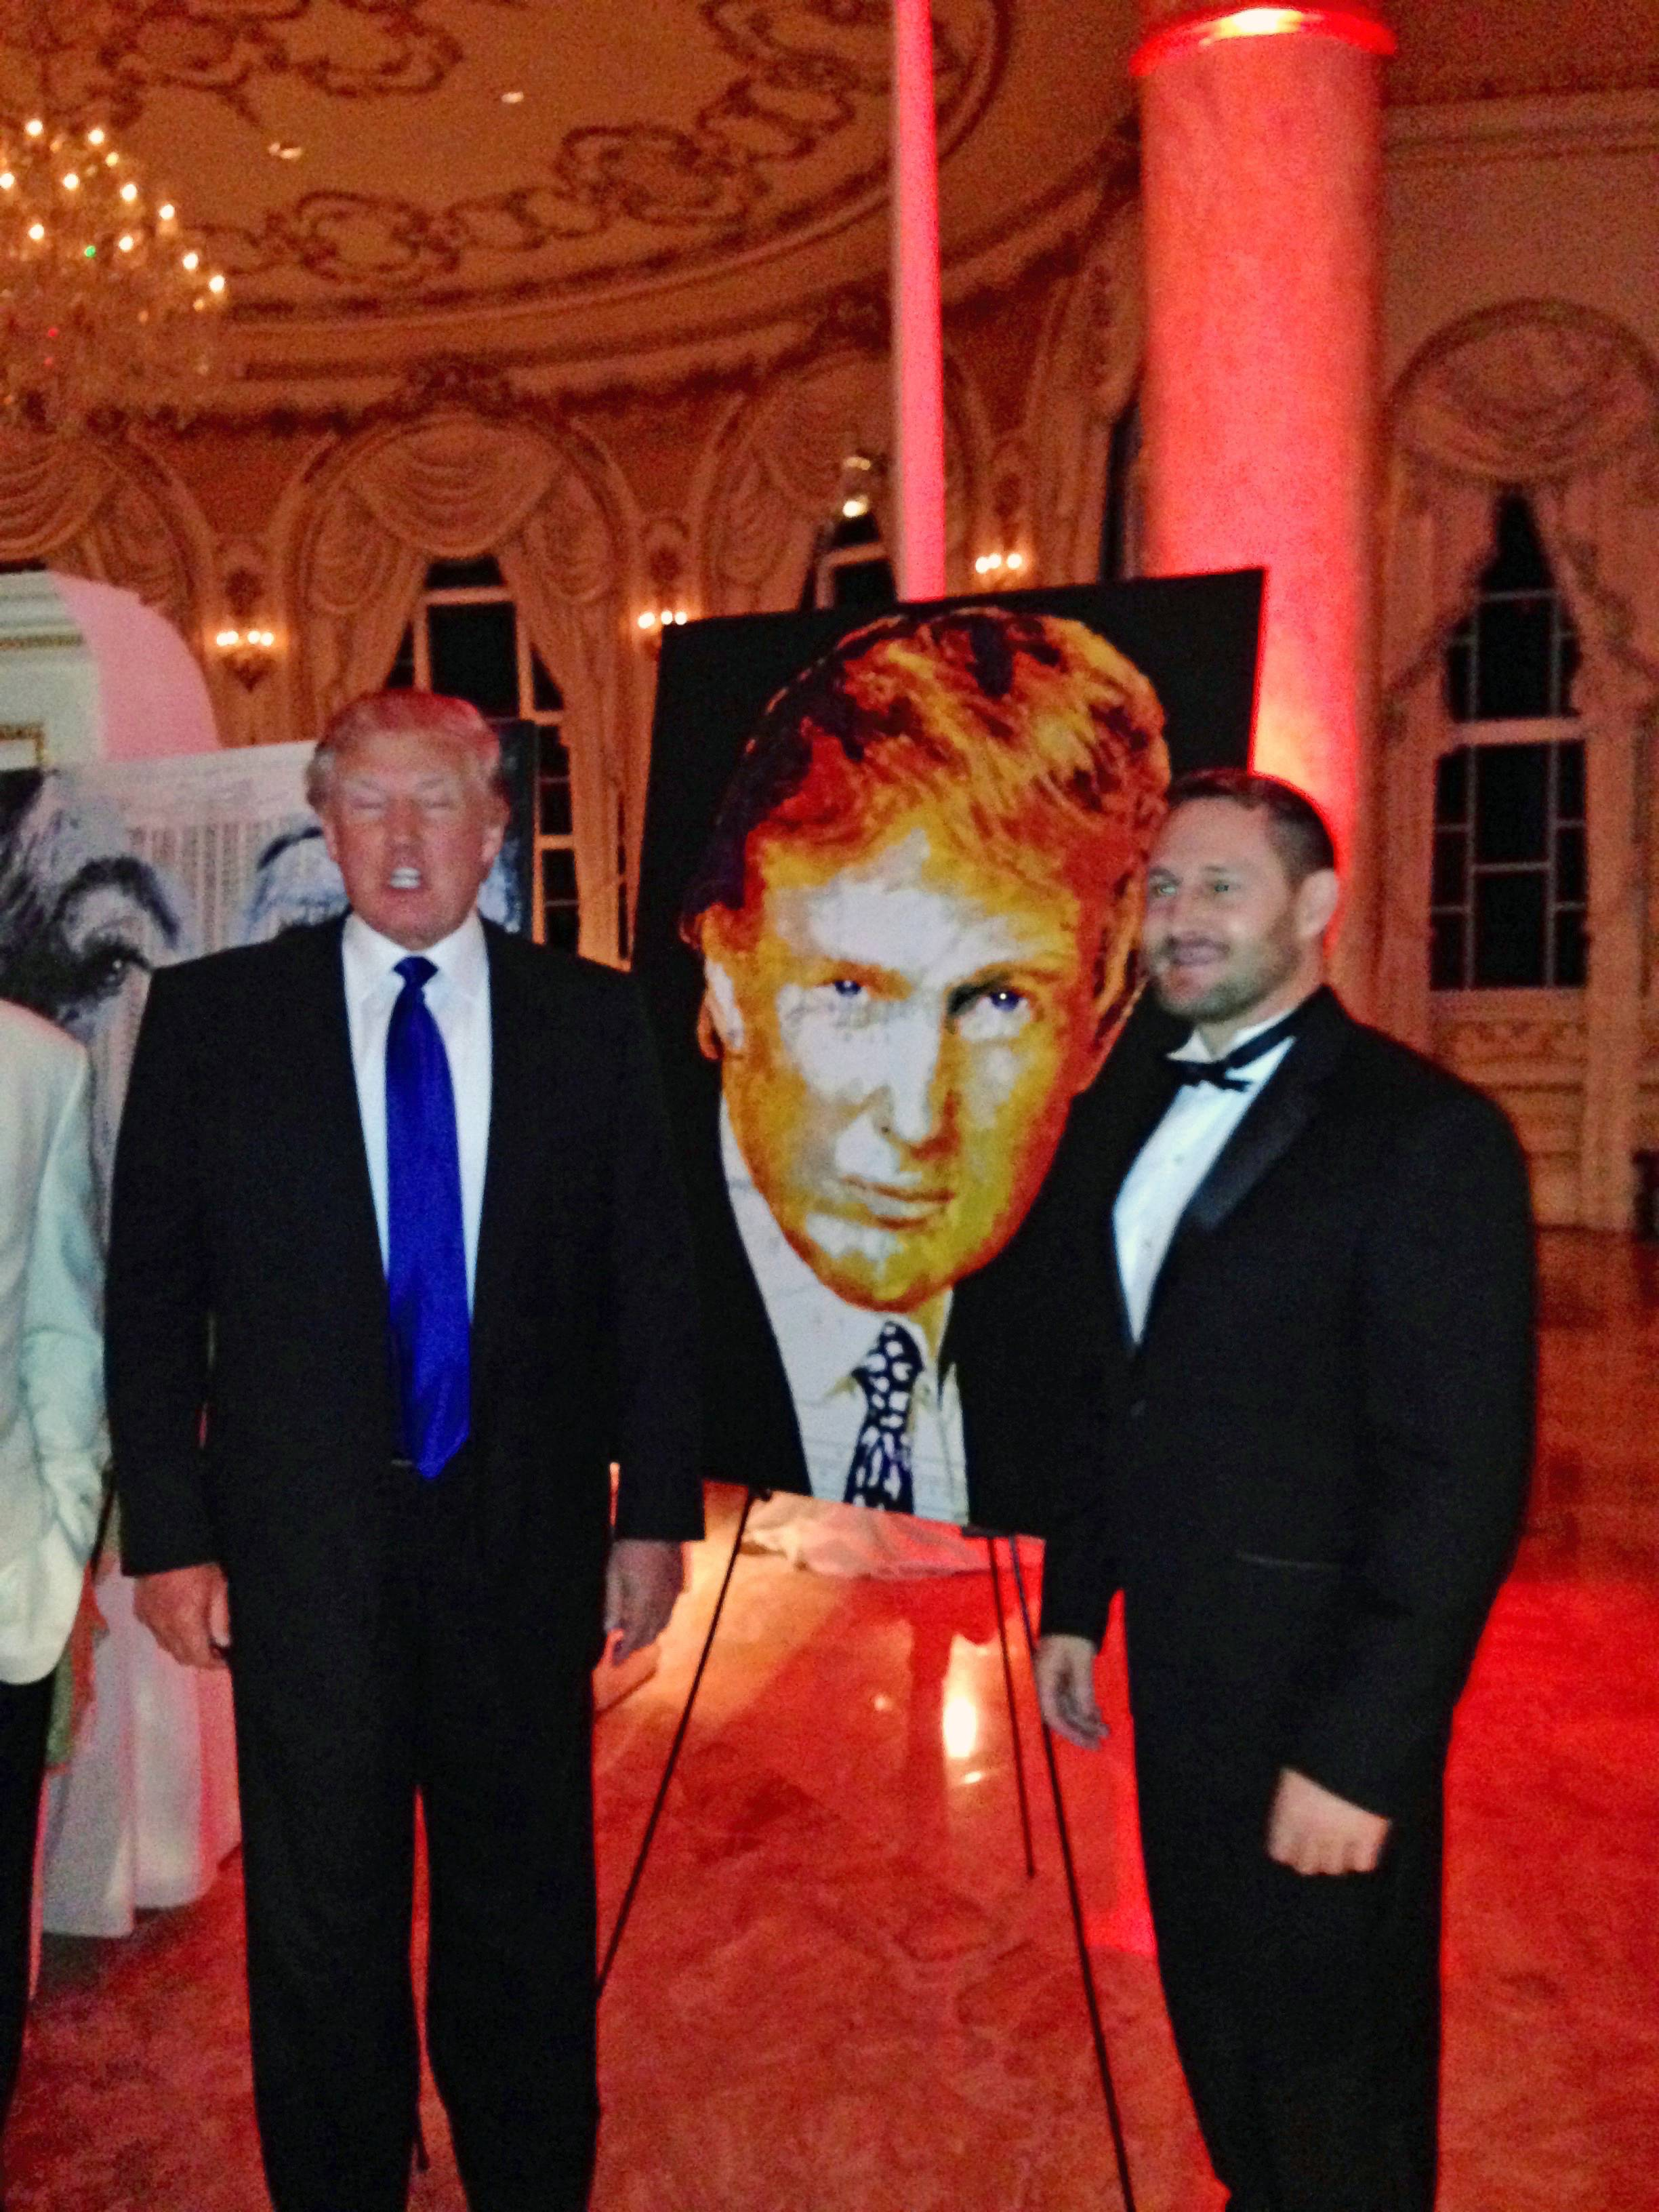 Trump with the painting that he bought.